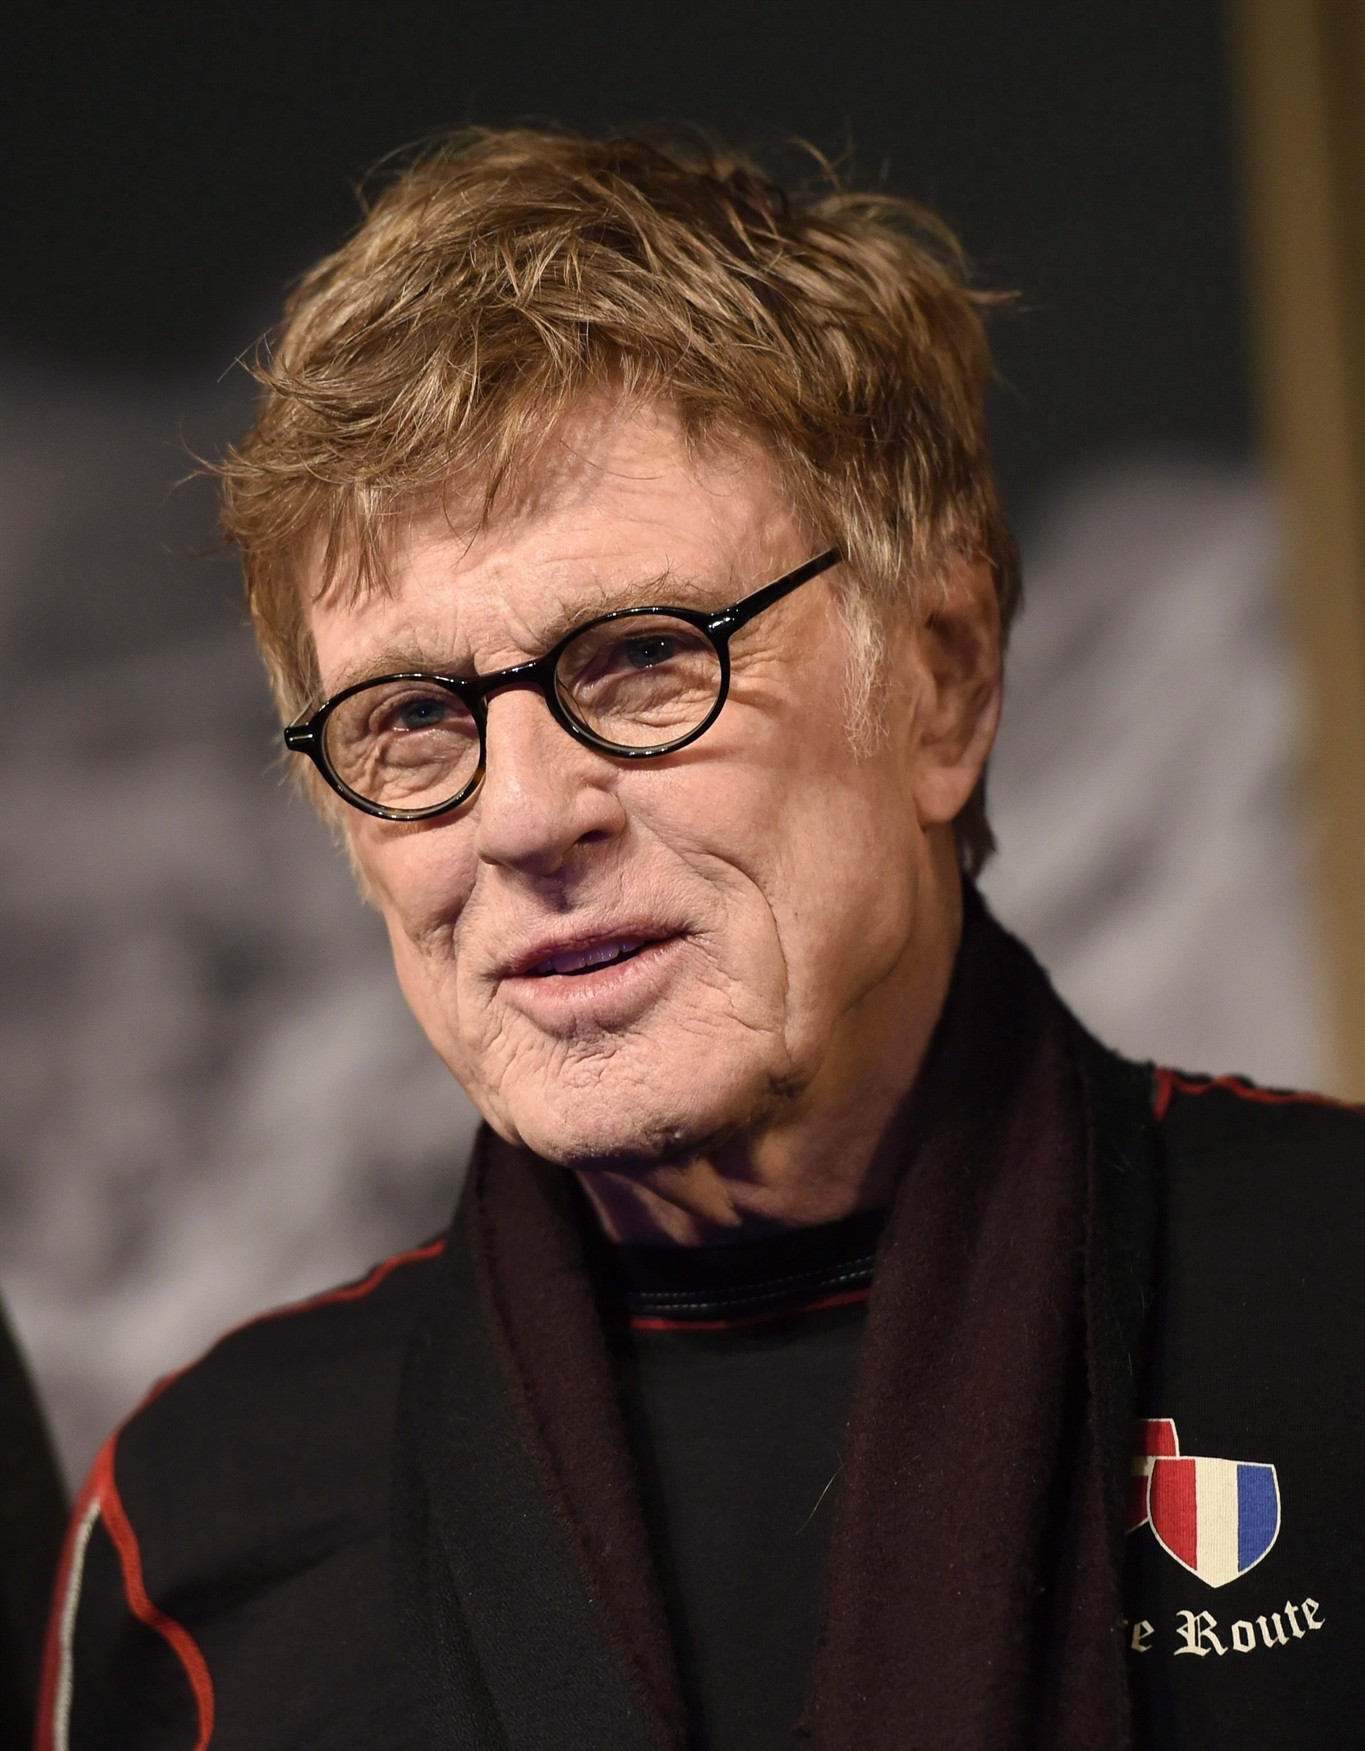 Robert Redford calls Newfoundland 'a special place' in new ...